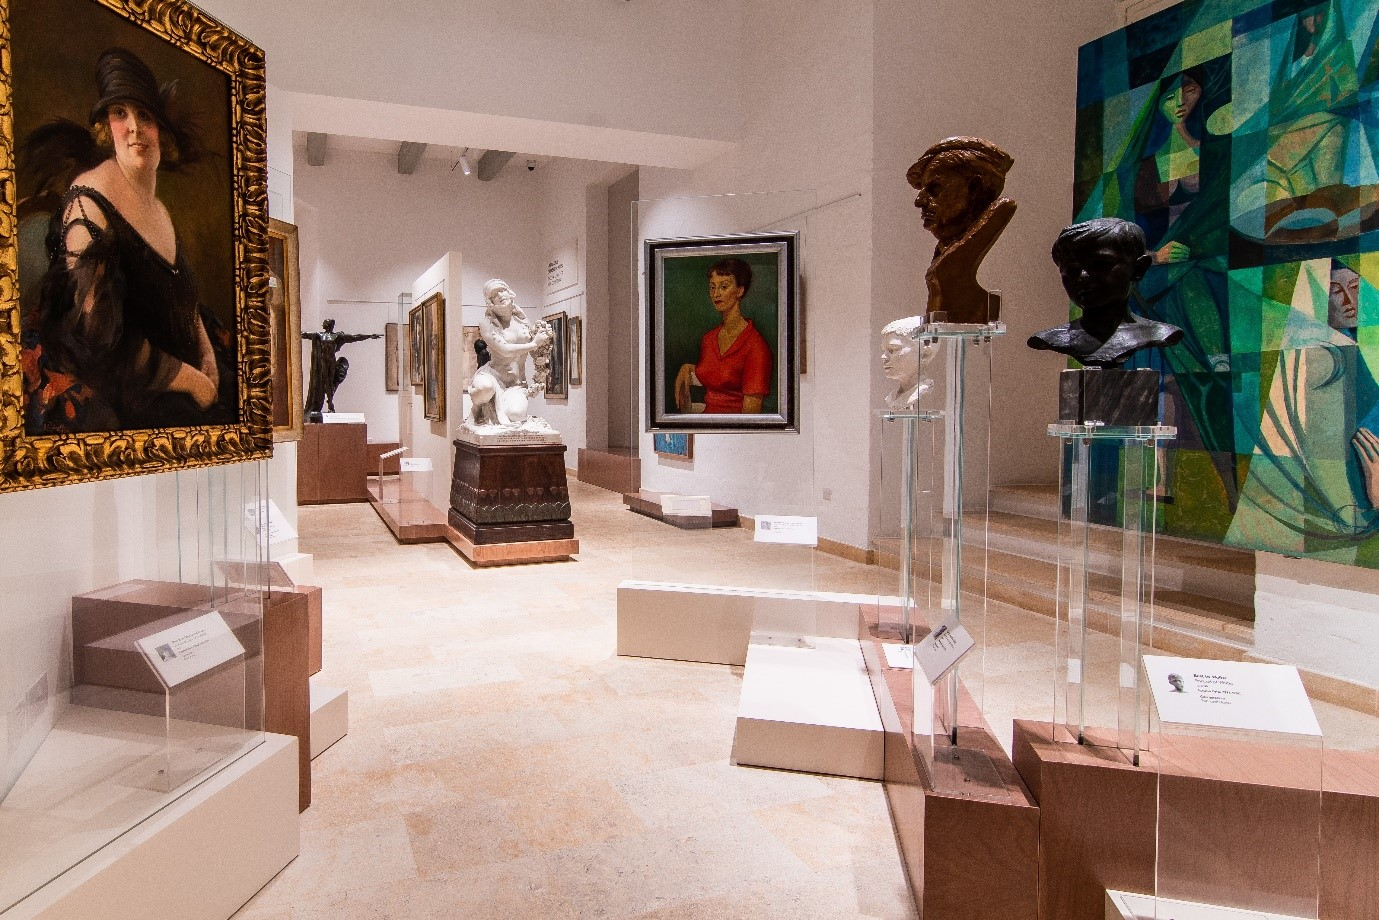 Collection of works in the Malta National Community Art Museum (MUŻA). Phot. Alex Turnball